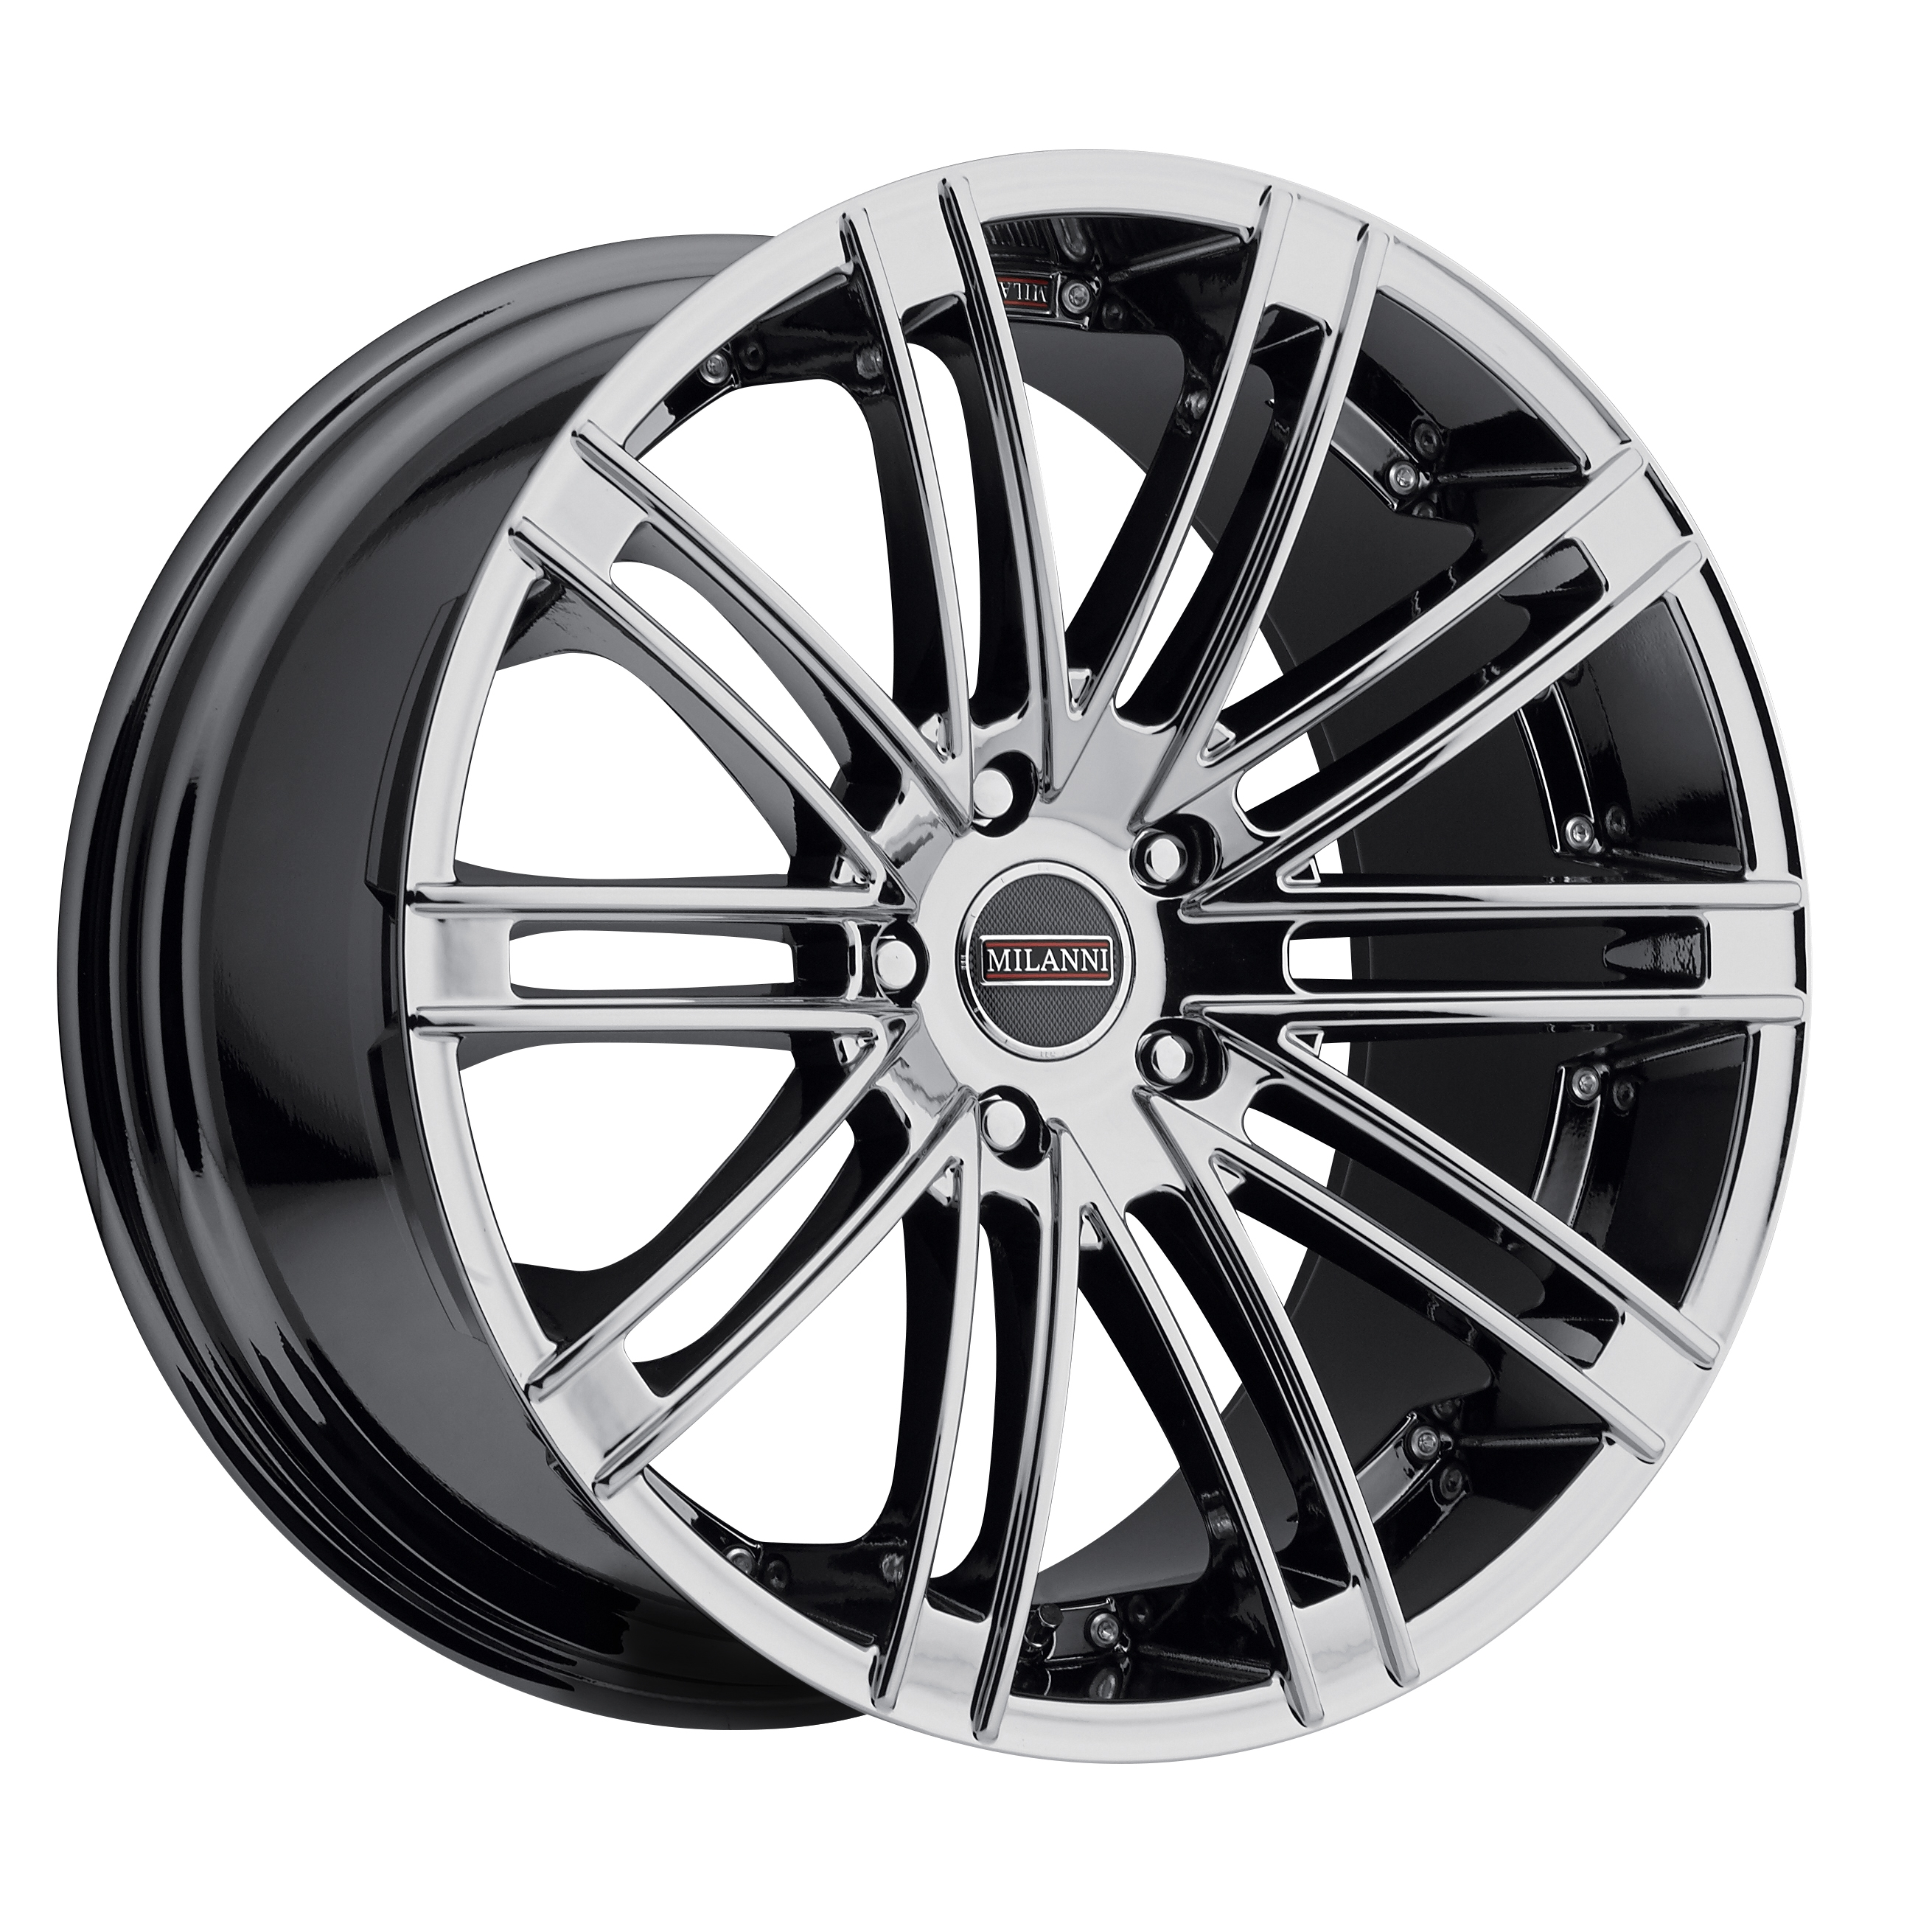 Vision Wheel Launches Milanni Custom Wheel Line for Sport/Luxury Tuners